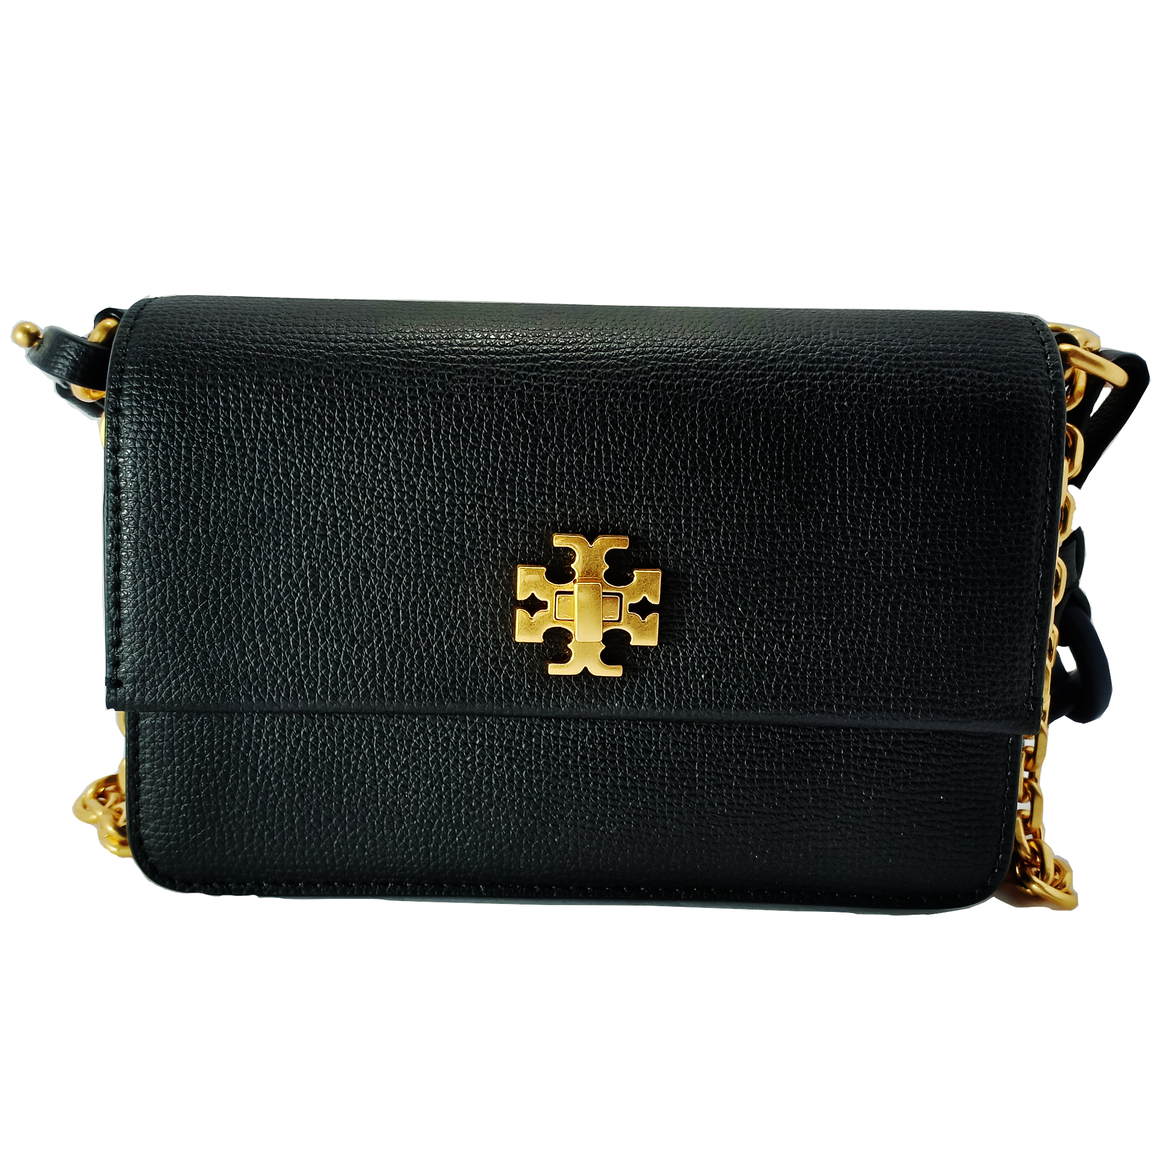 Tory Burch Kira Double Strap Mini Bag